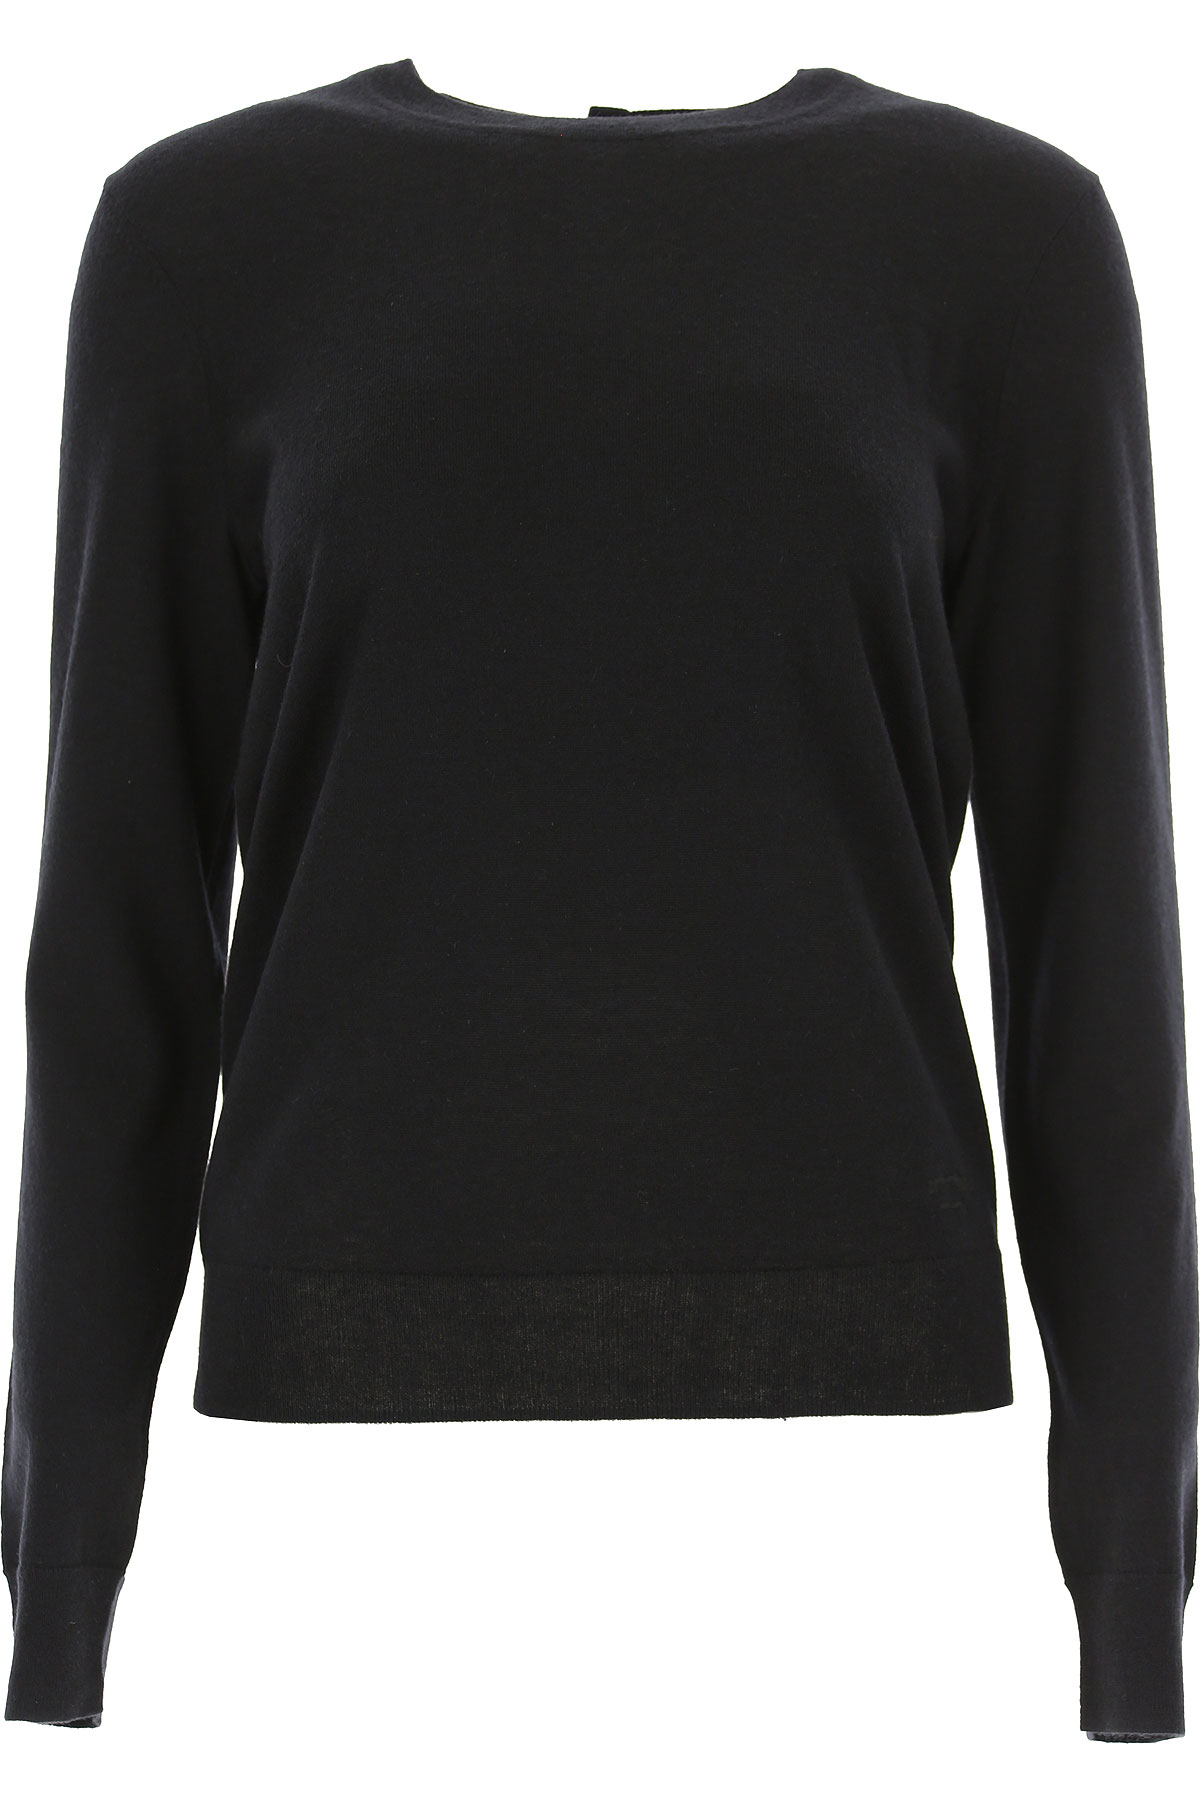 Tory Burch Sweater for Women Jumper, Black, Cashemere, 2017, 2 4 6 8 USA-466034